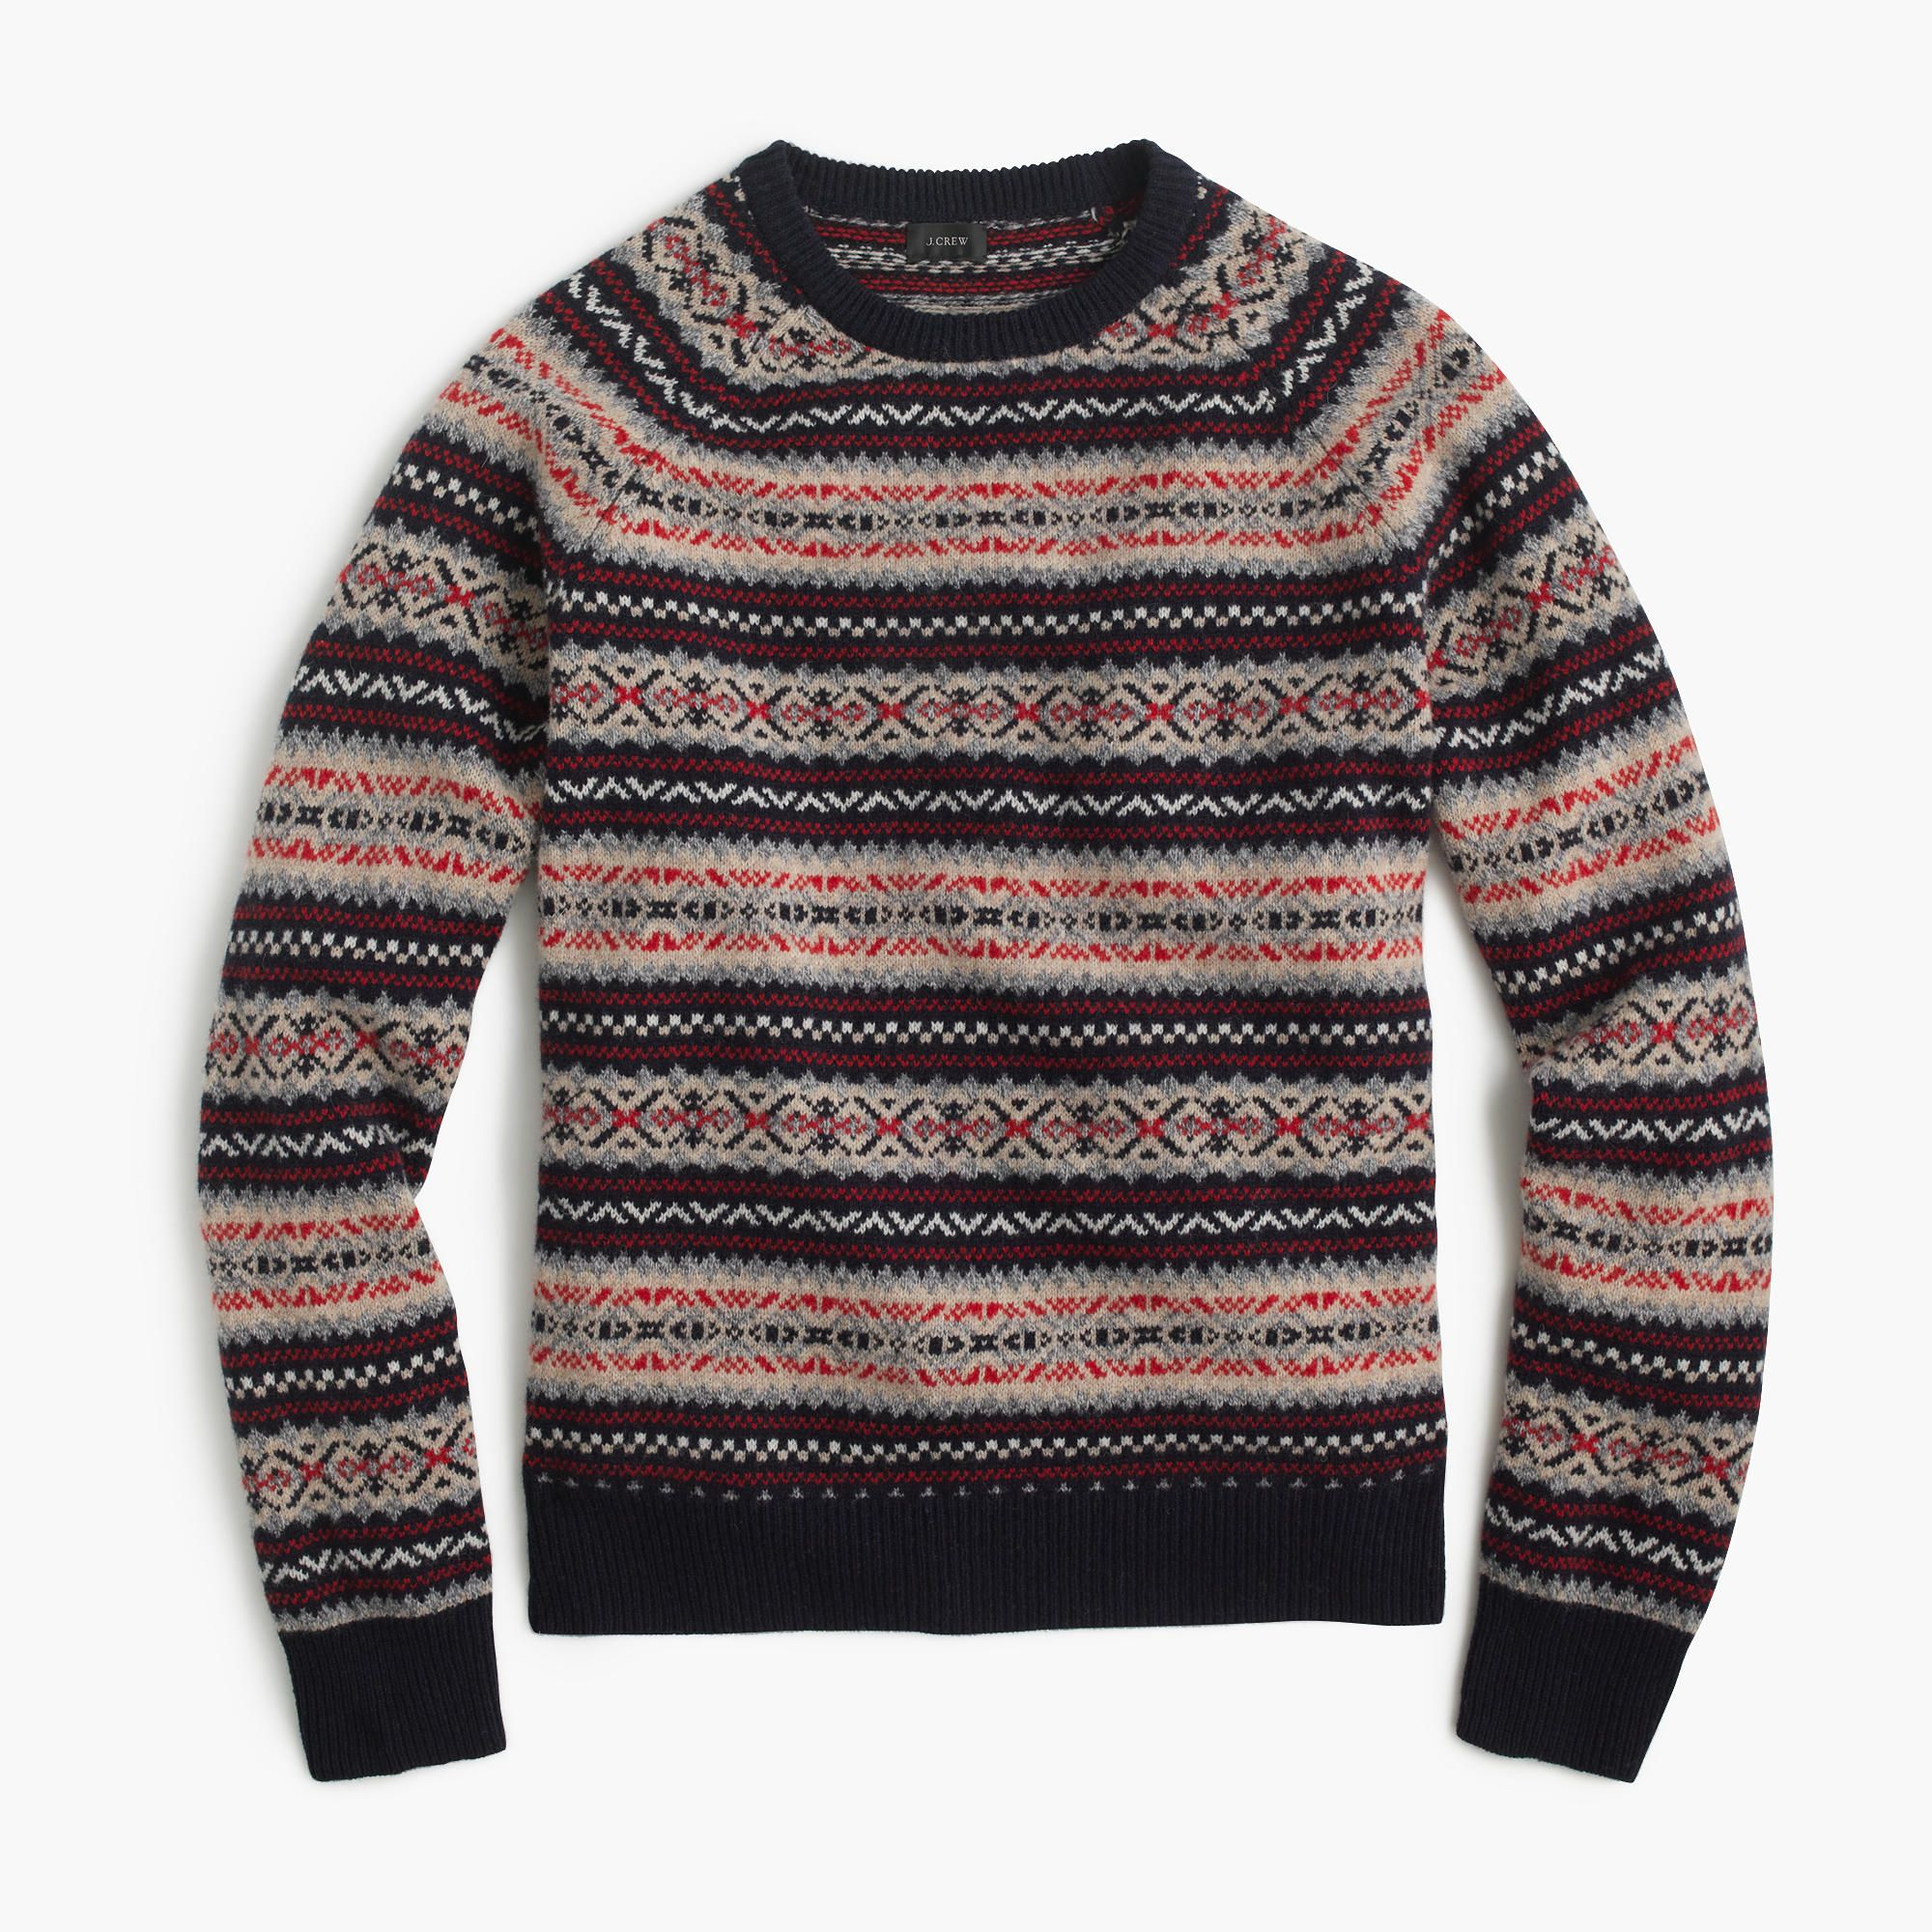 J.Crew - Lambswool Fair Isle sweater | Pullovers and Cardigans ...